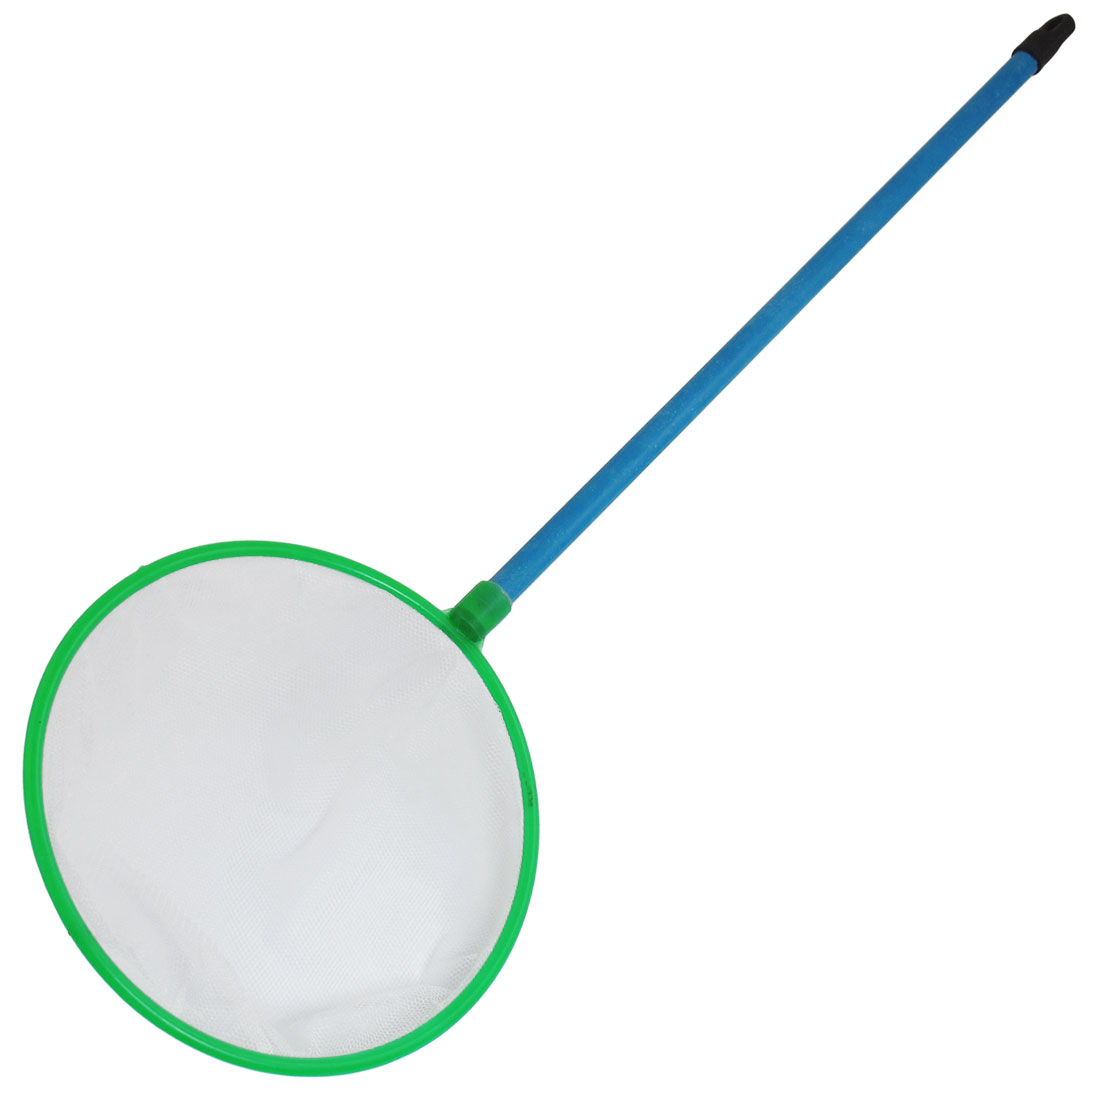 Green Round Mouth Frame Plastic Blue Handle Pond Tank Fish Landing Net